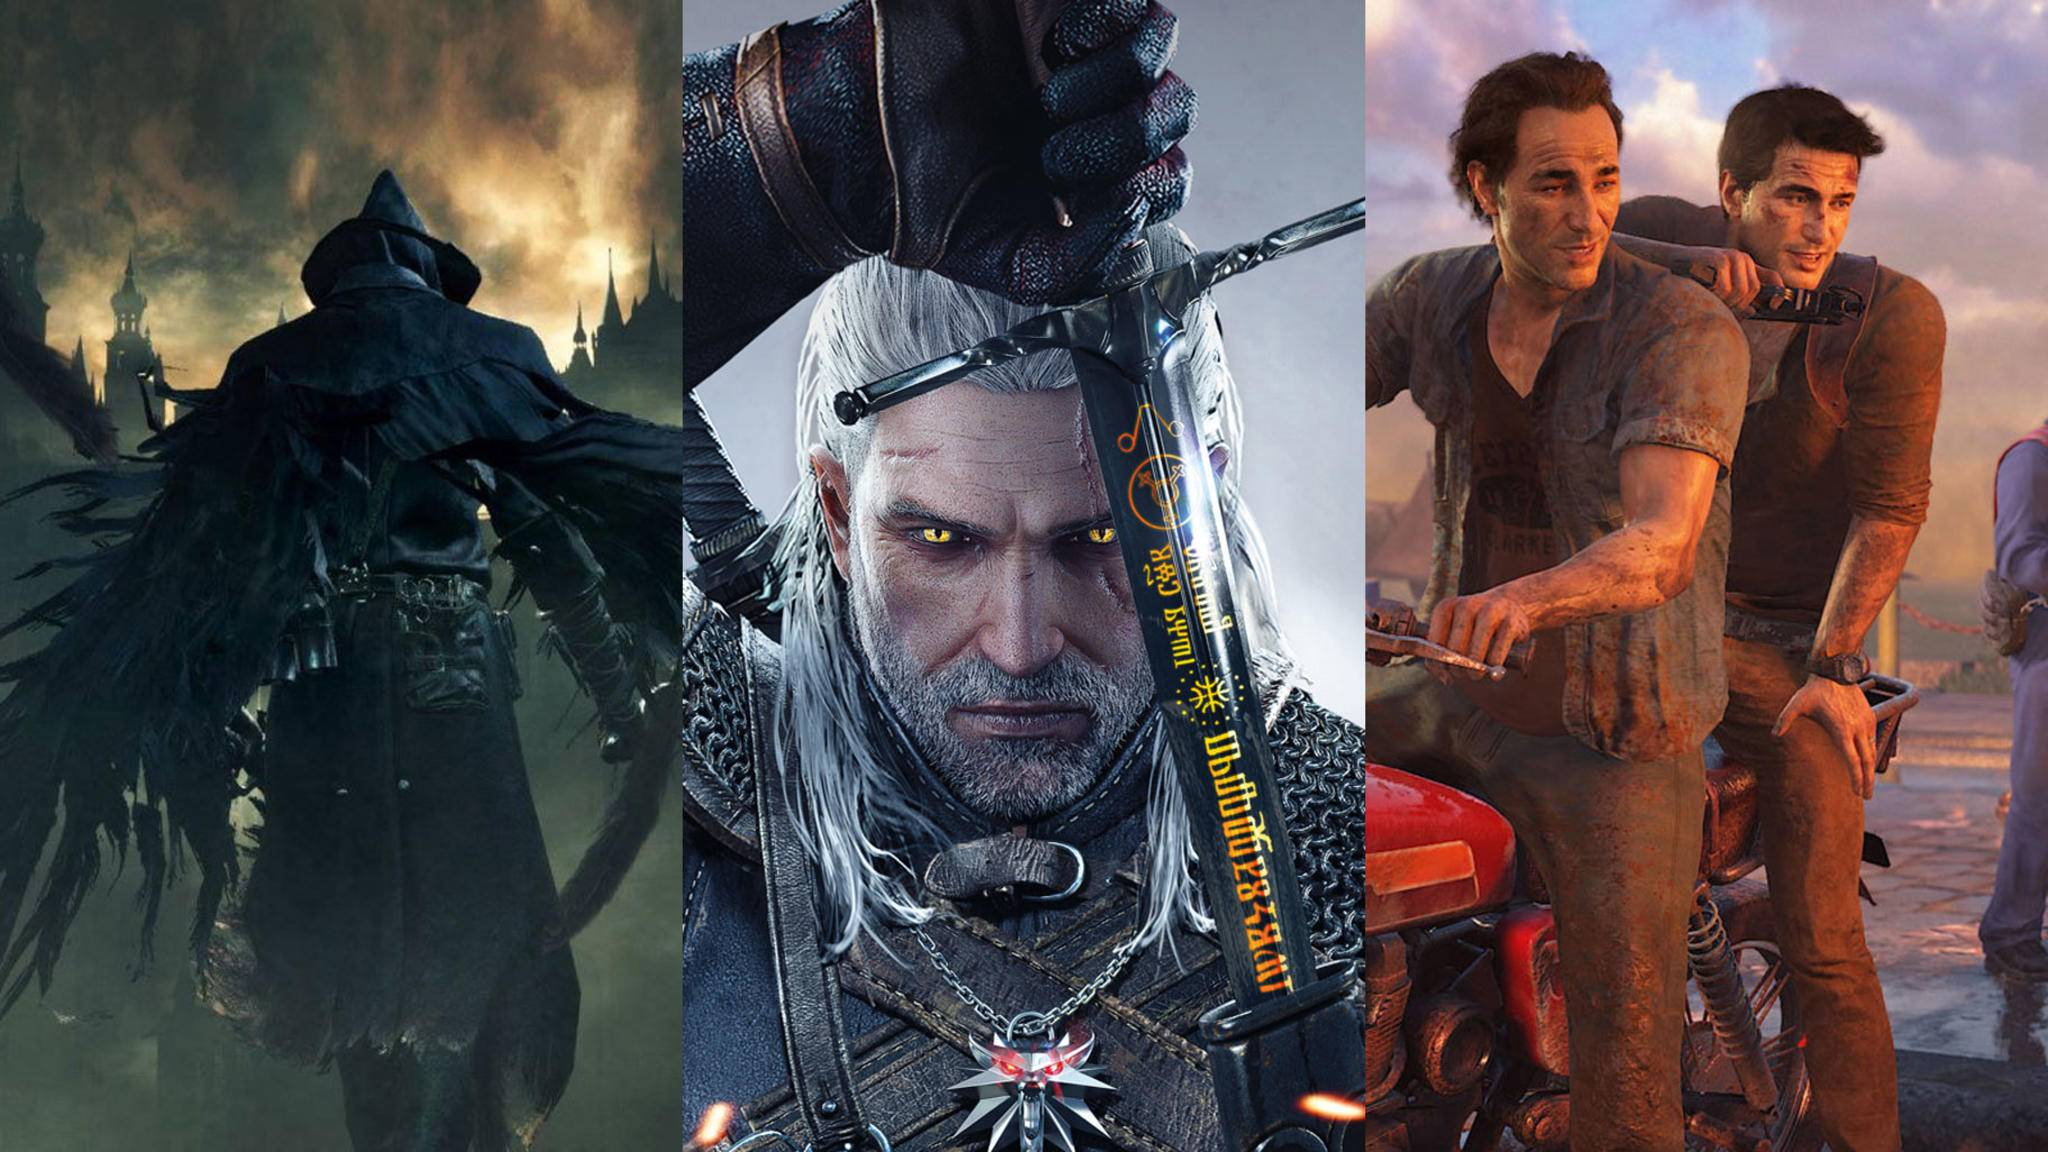 bloodborne-witcher-3-uncharted-4-collage-ps4